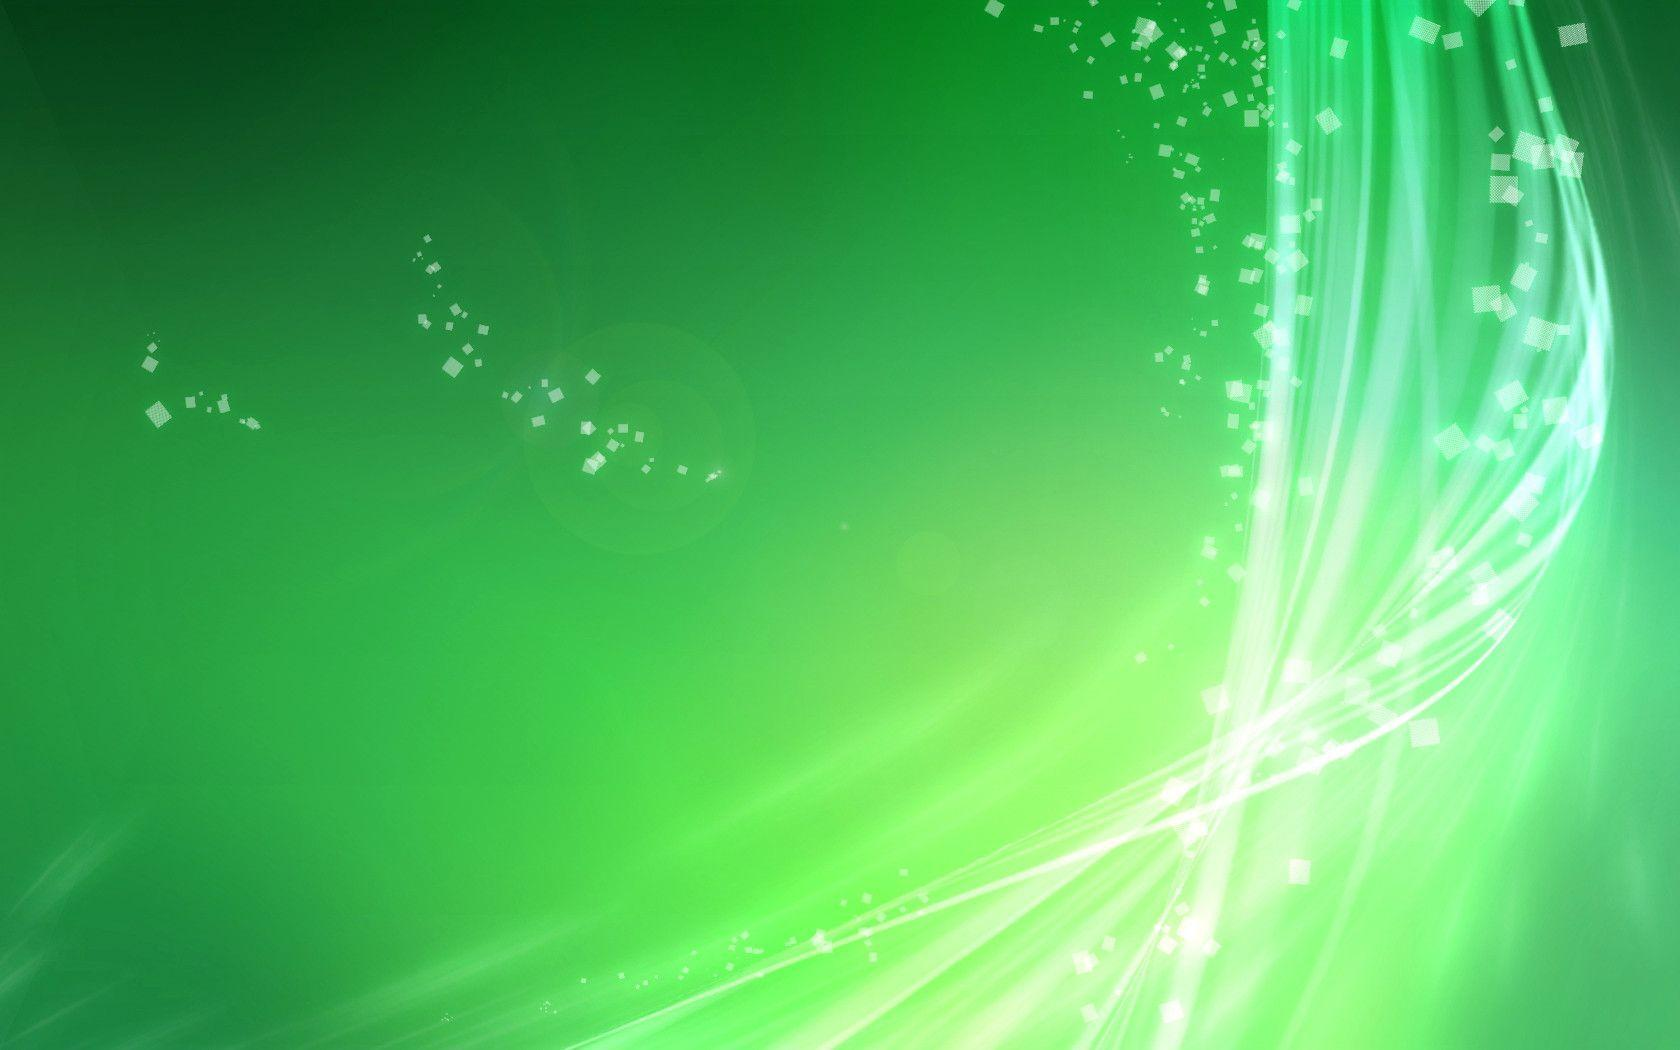 Light Green Abstract Wallpaper Hd Widescreen 10 HD Wallpapers